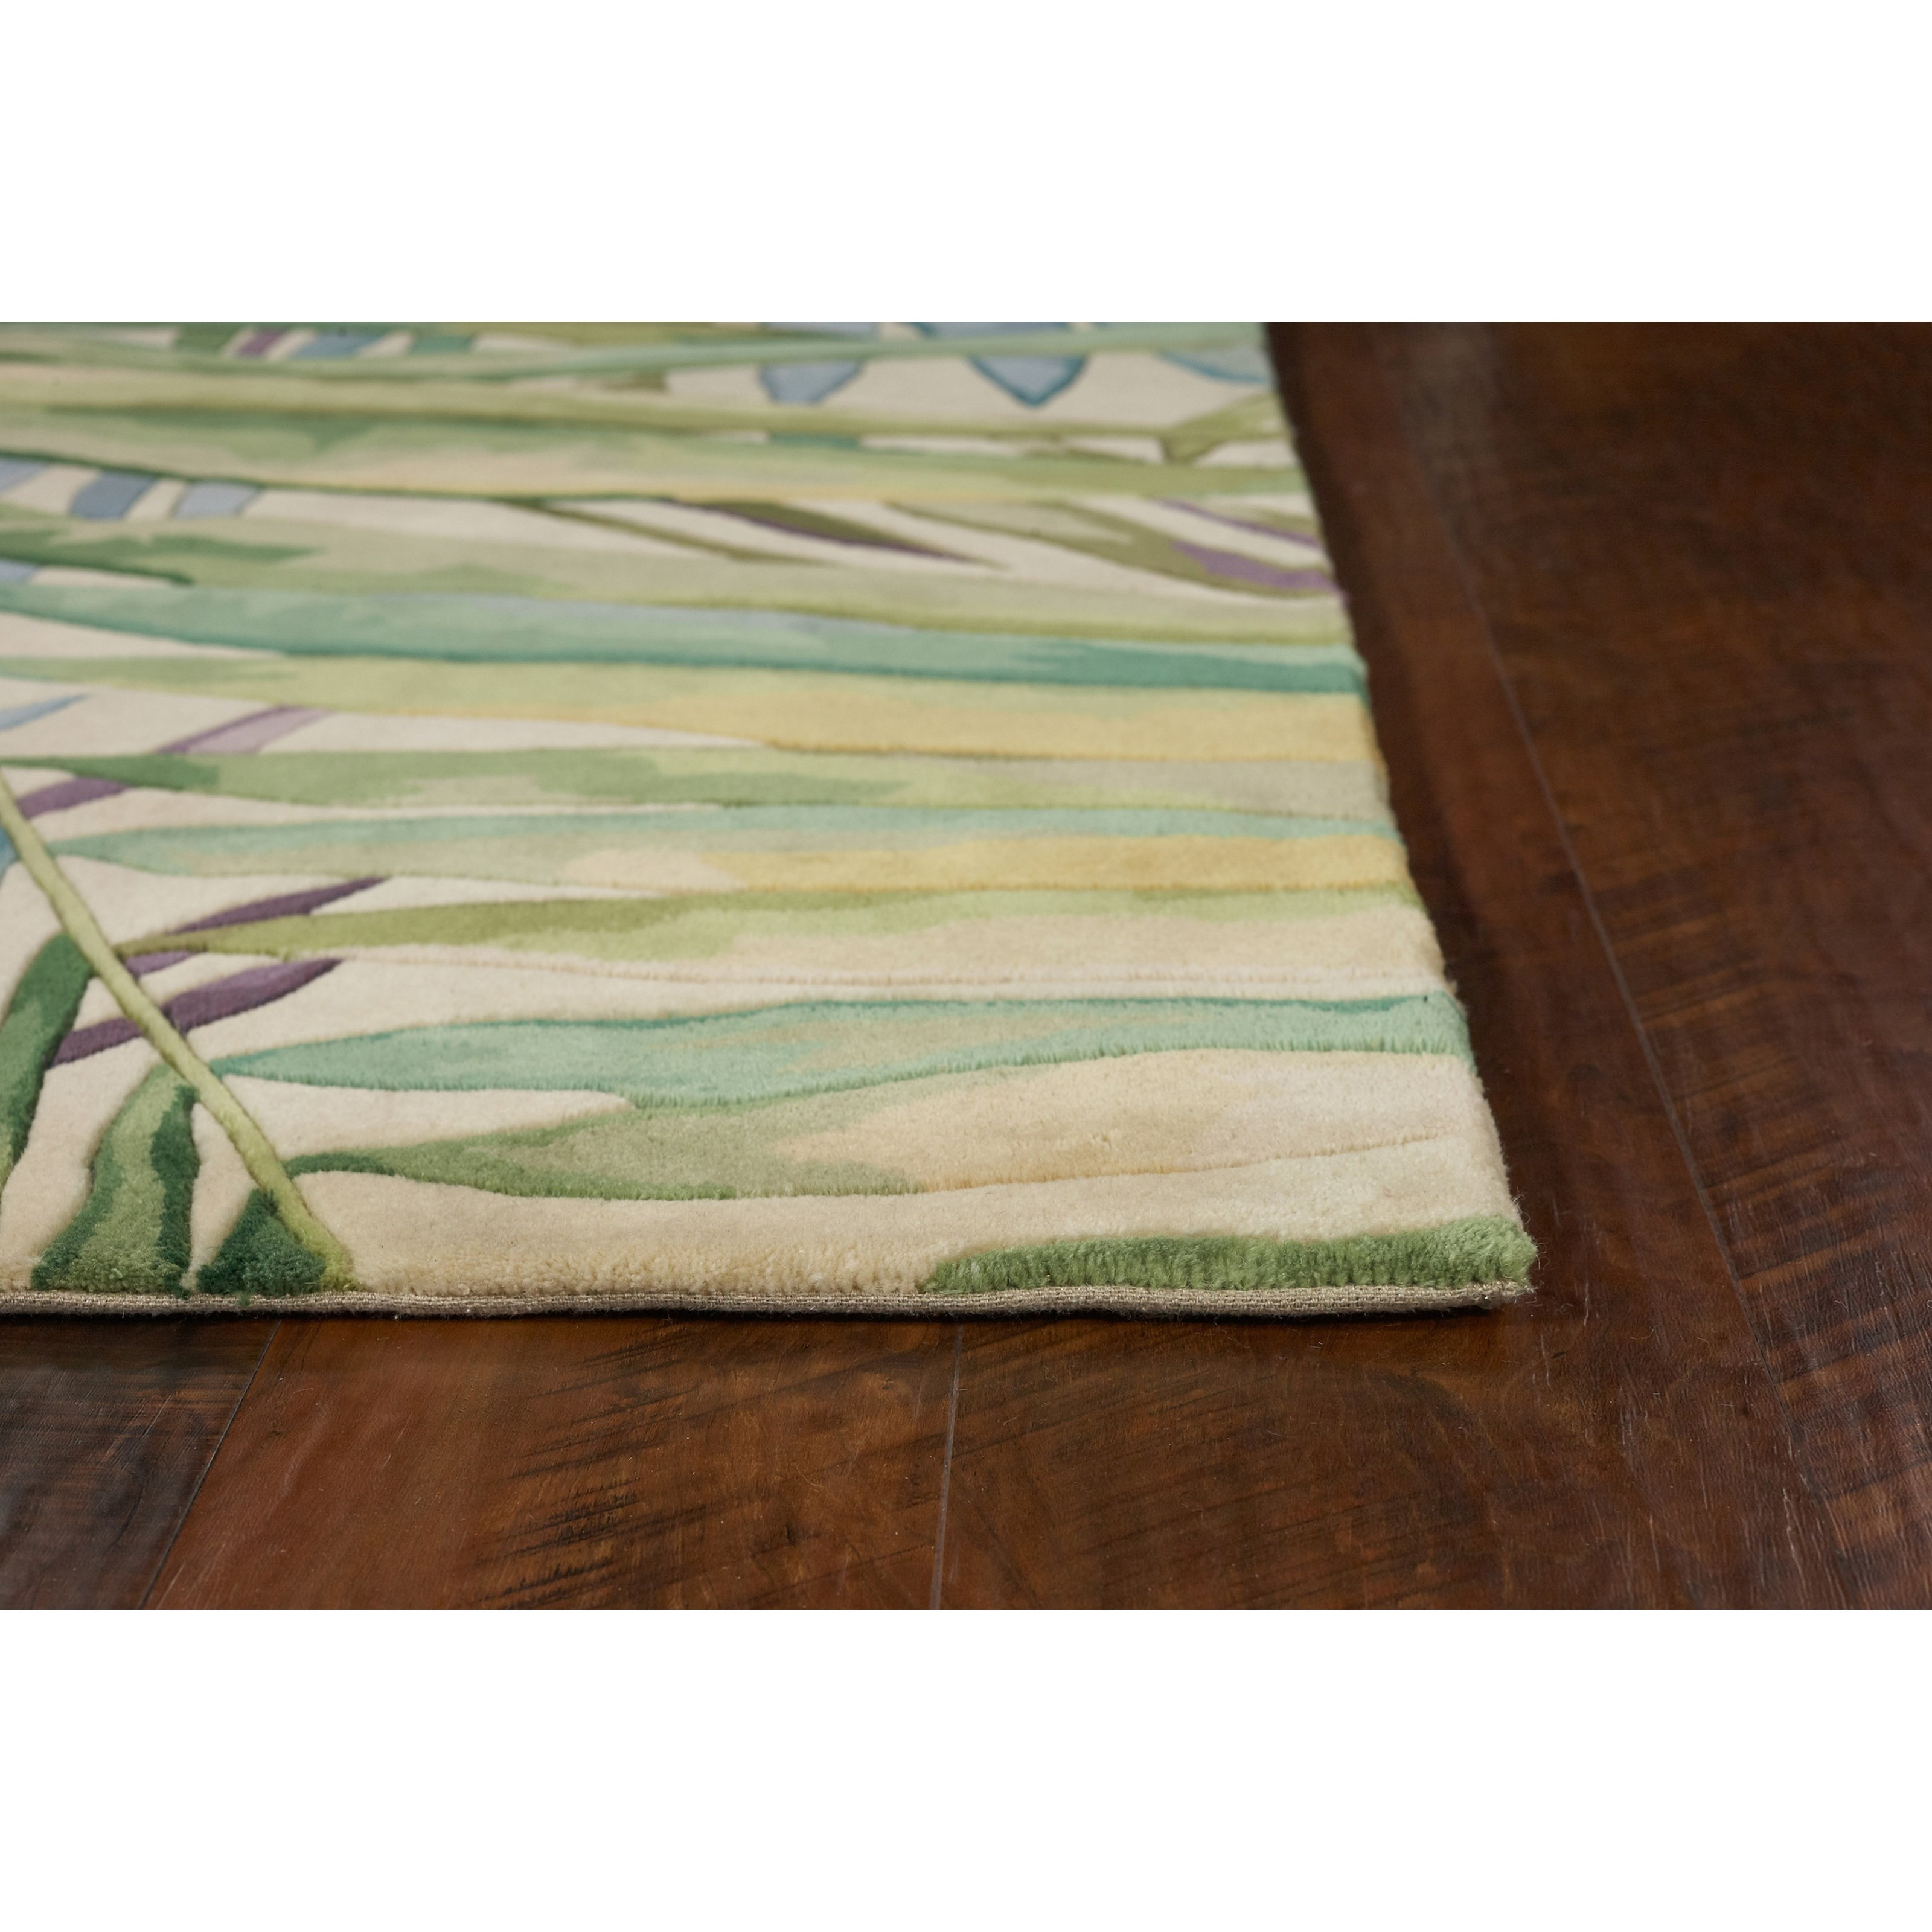 Catalina 8' X 5' Area Rug by Kas at Zak's Home